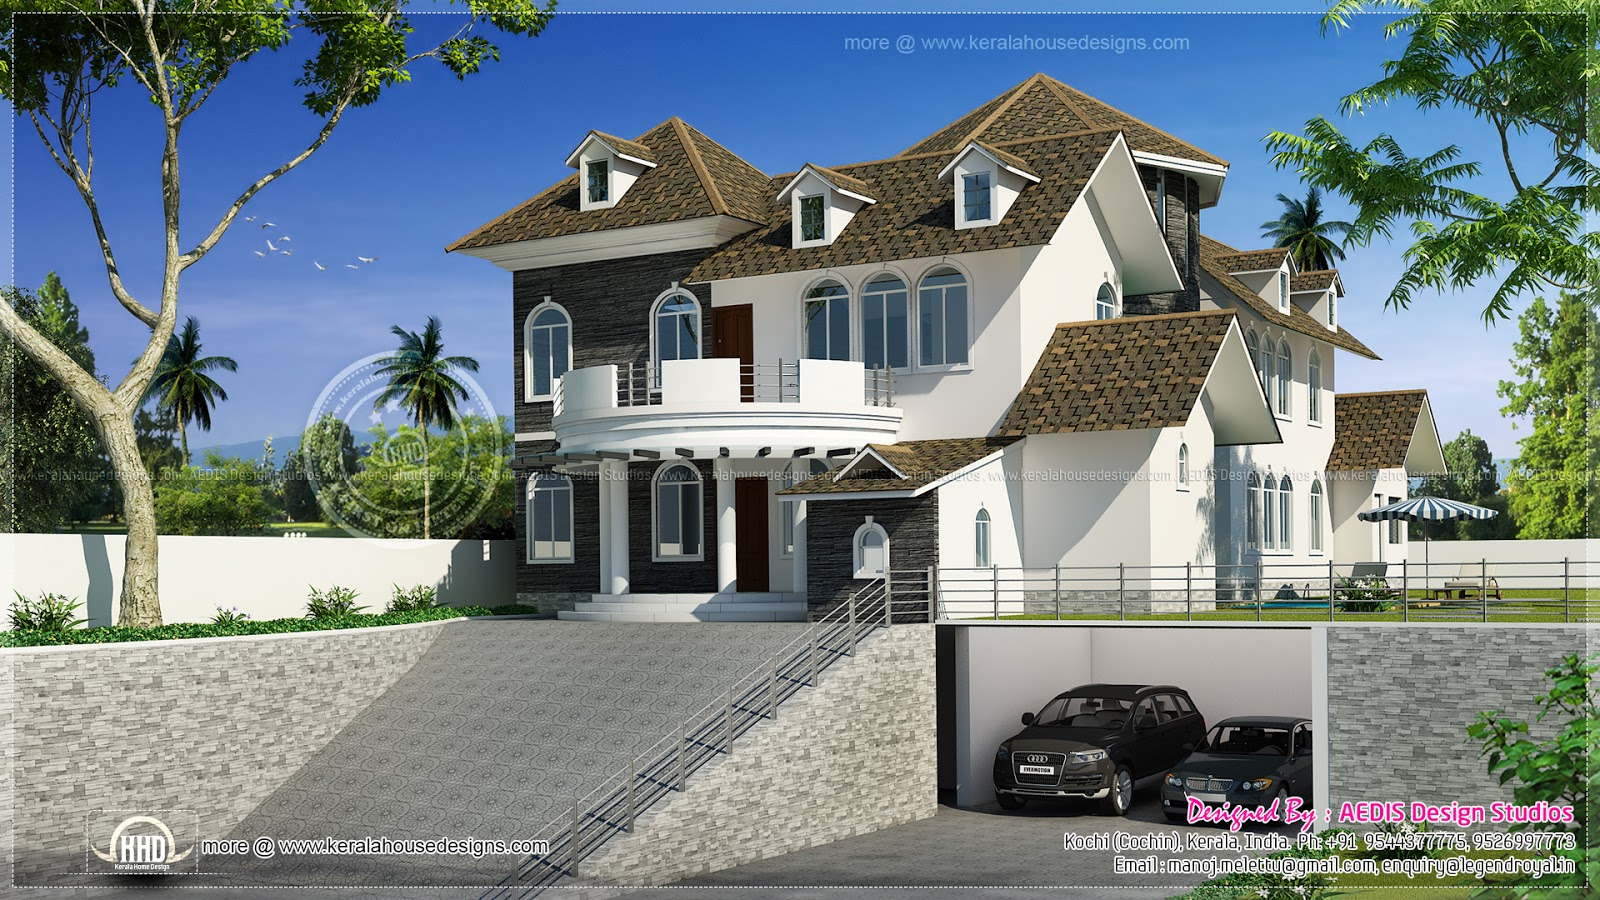 3400 square feet modern hill side home design kerala for Residential remodeling